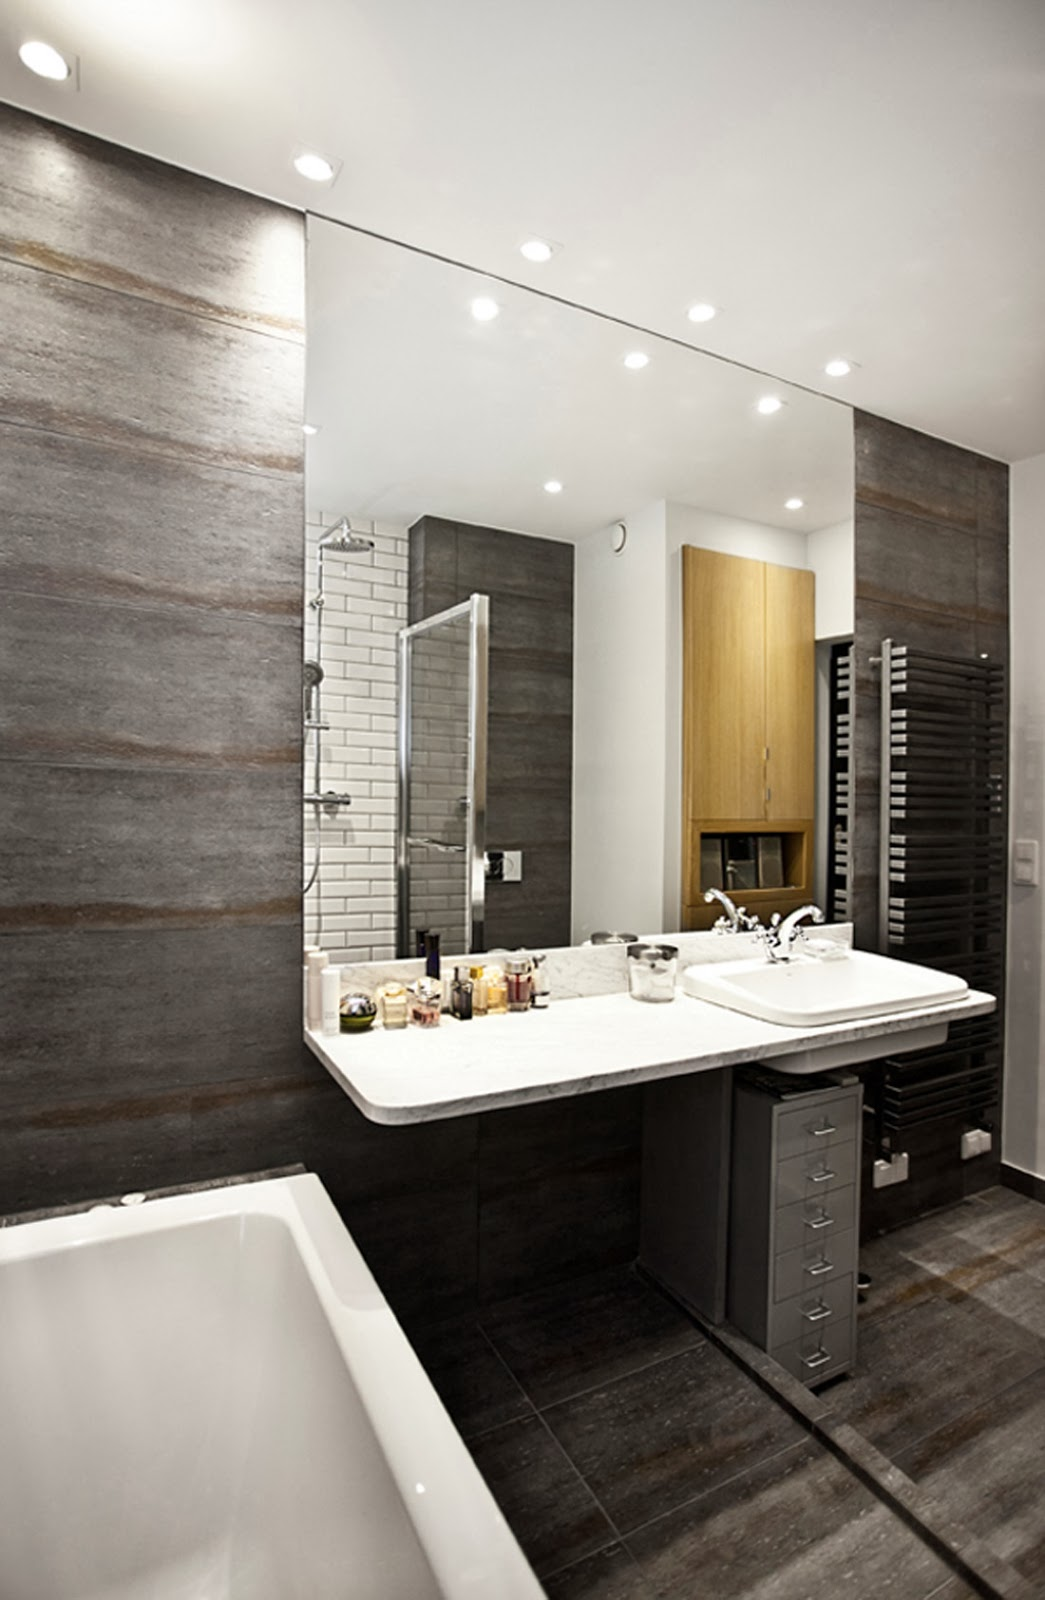 Loft bathroom ideas bathroom showers for Bathroom designs org